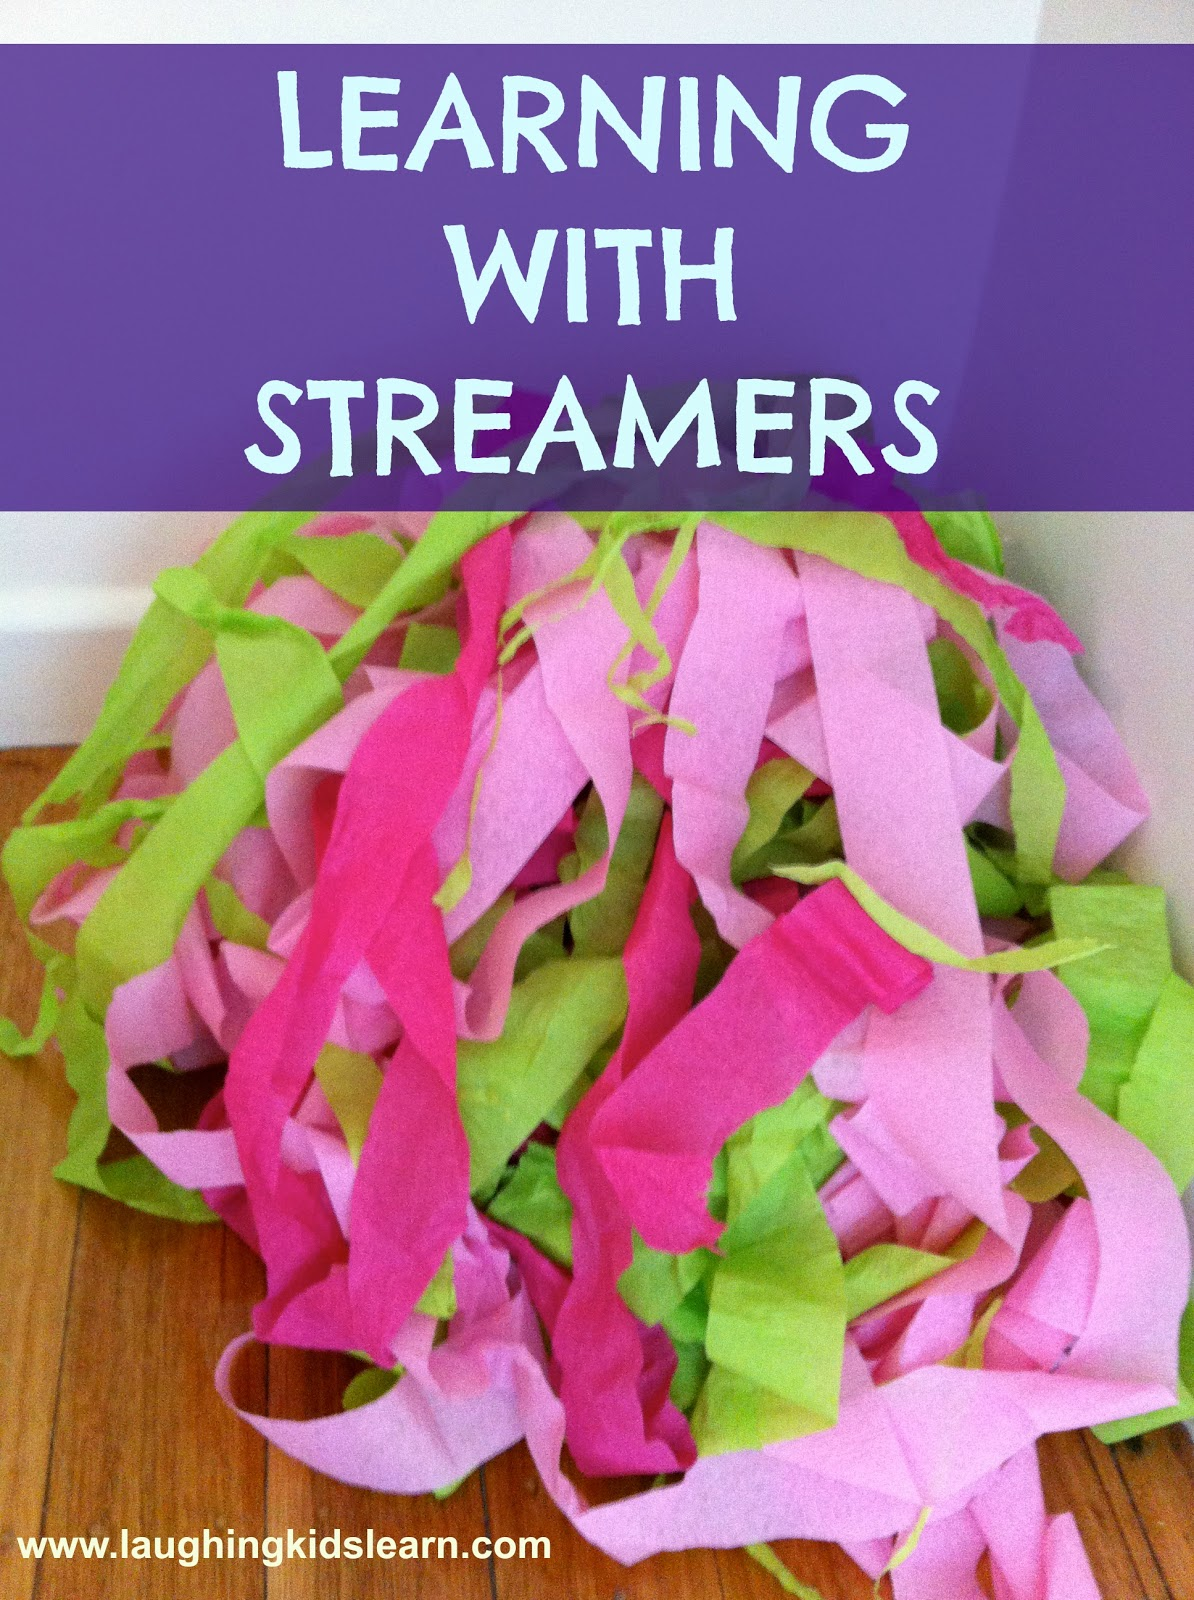 Children Learning With Streamers Laughing Kids Learn